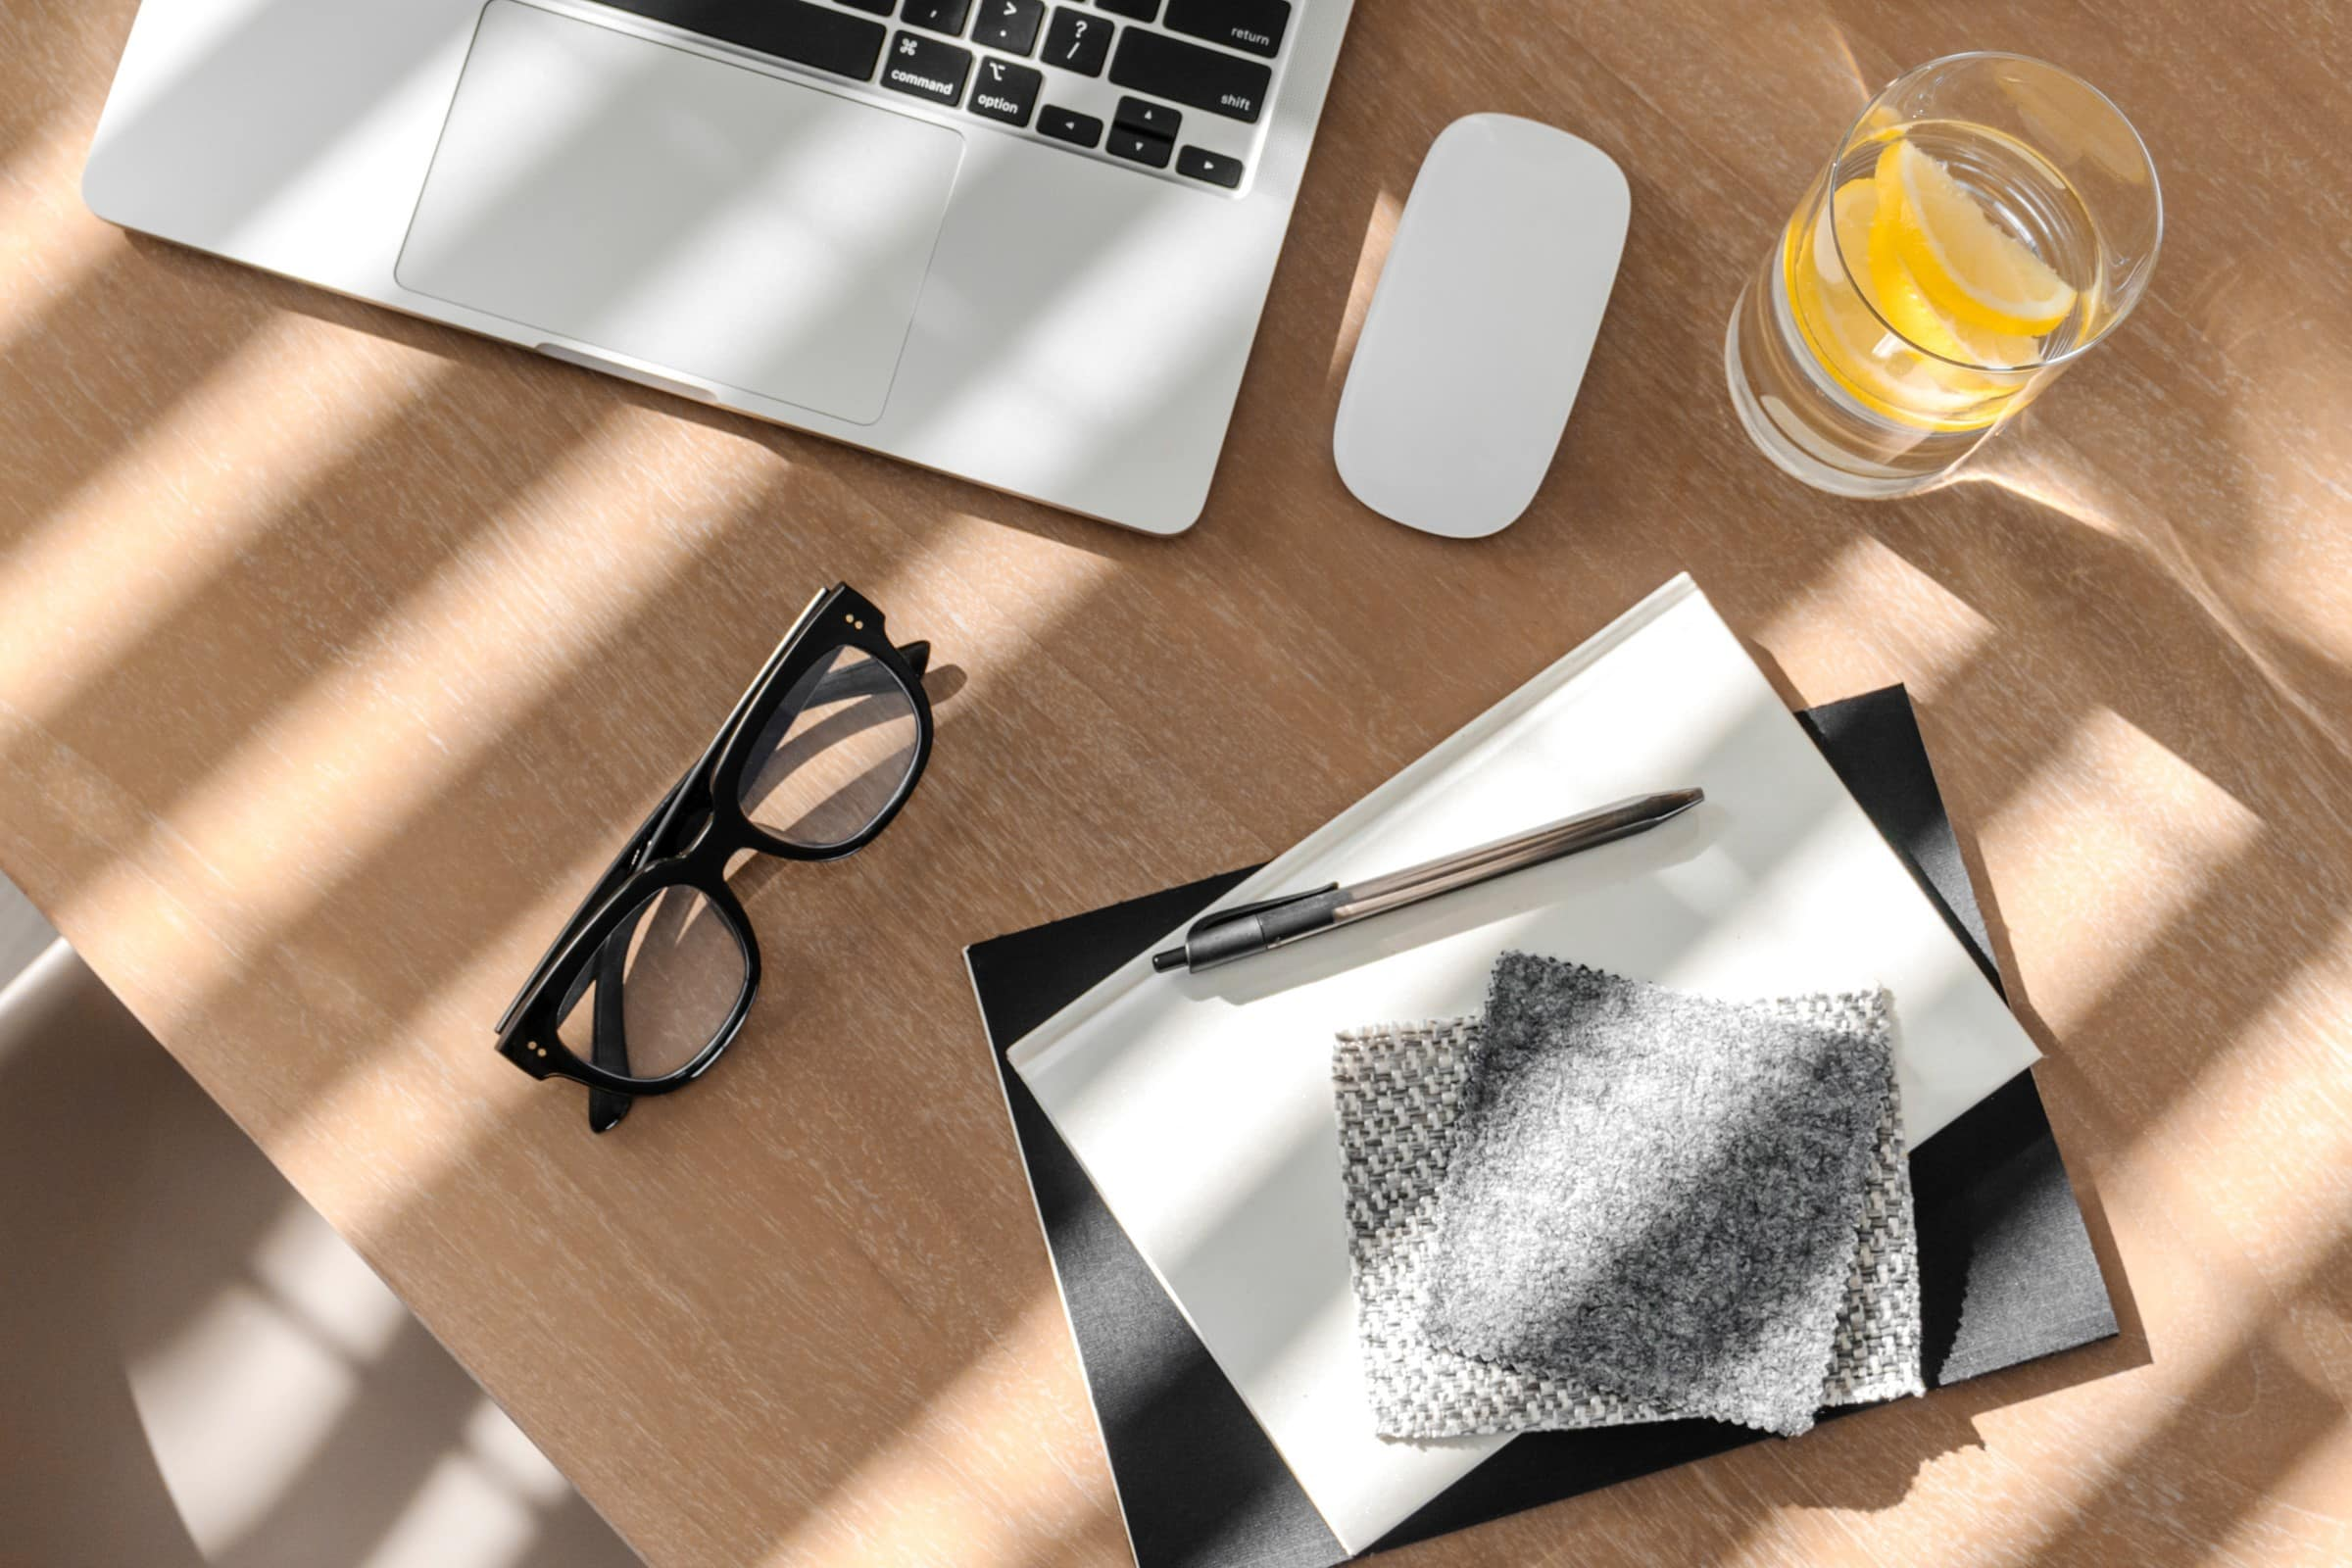 Notepads, laptop, mouse, glasses and glass of water on a desk